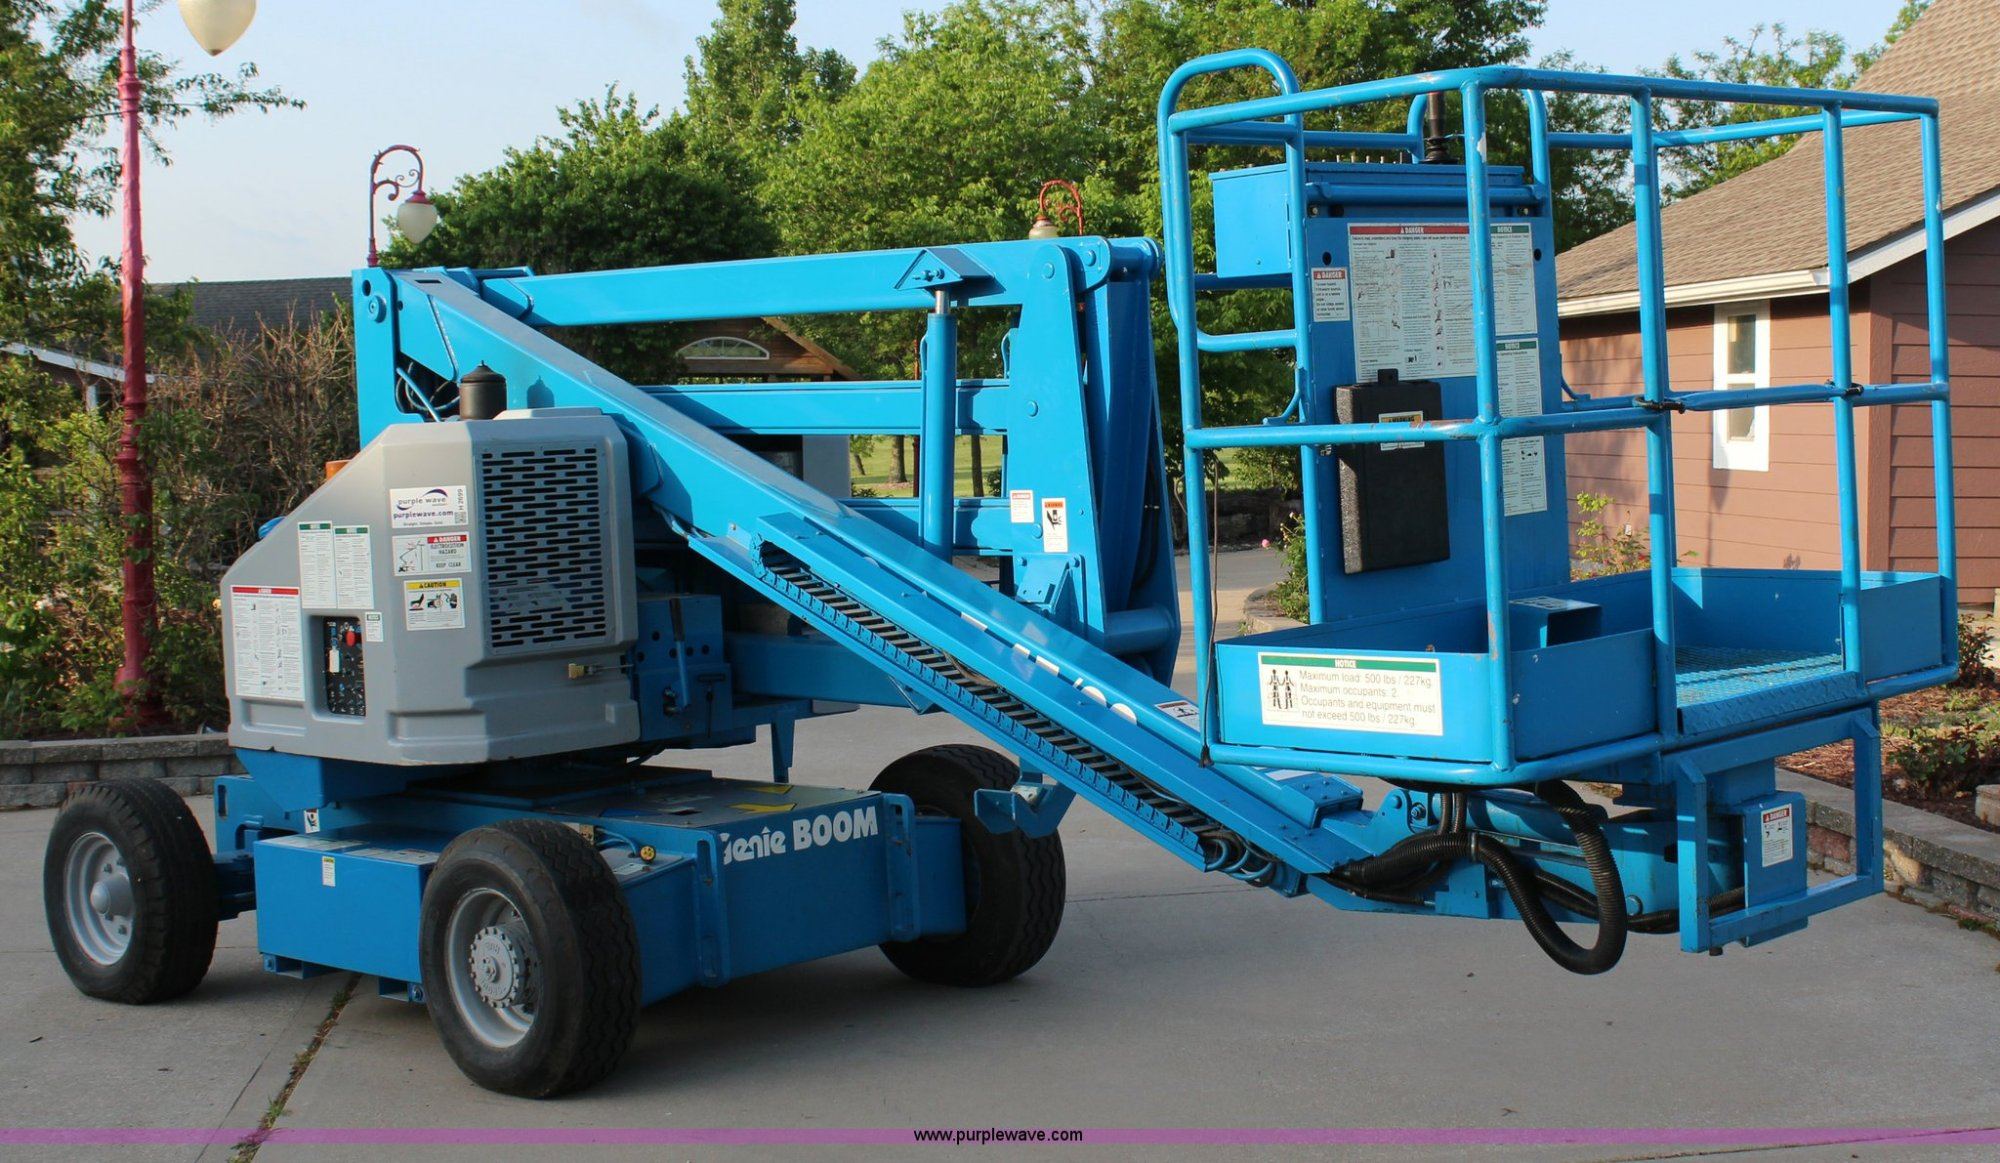 hight resolution of h2699 image for item h2699 1993 genie z45 22 boom lift